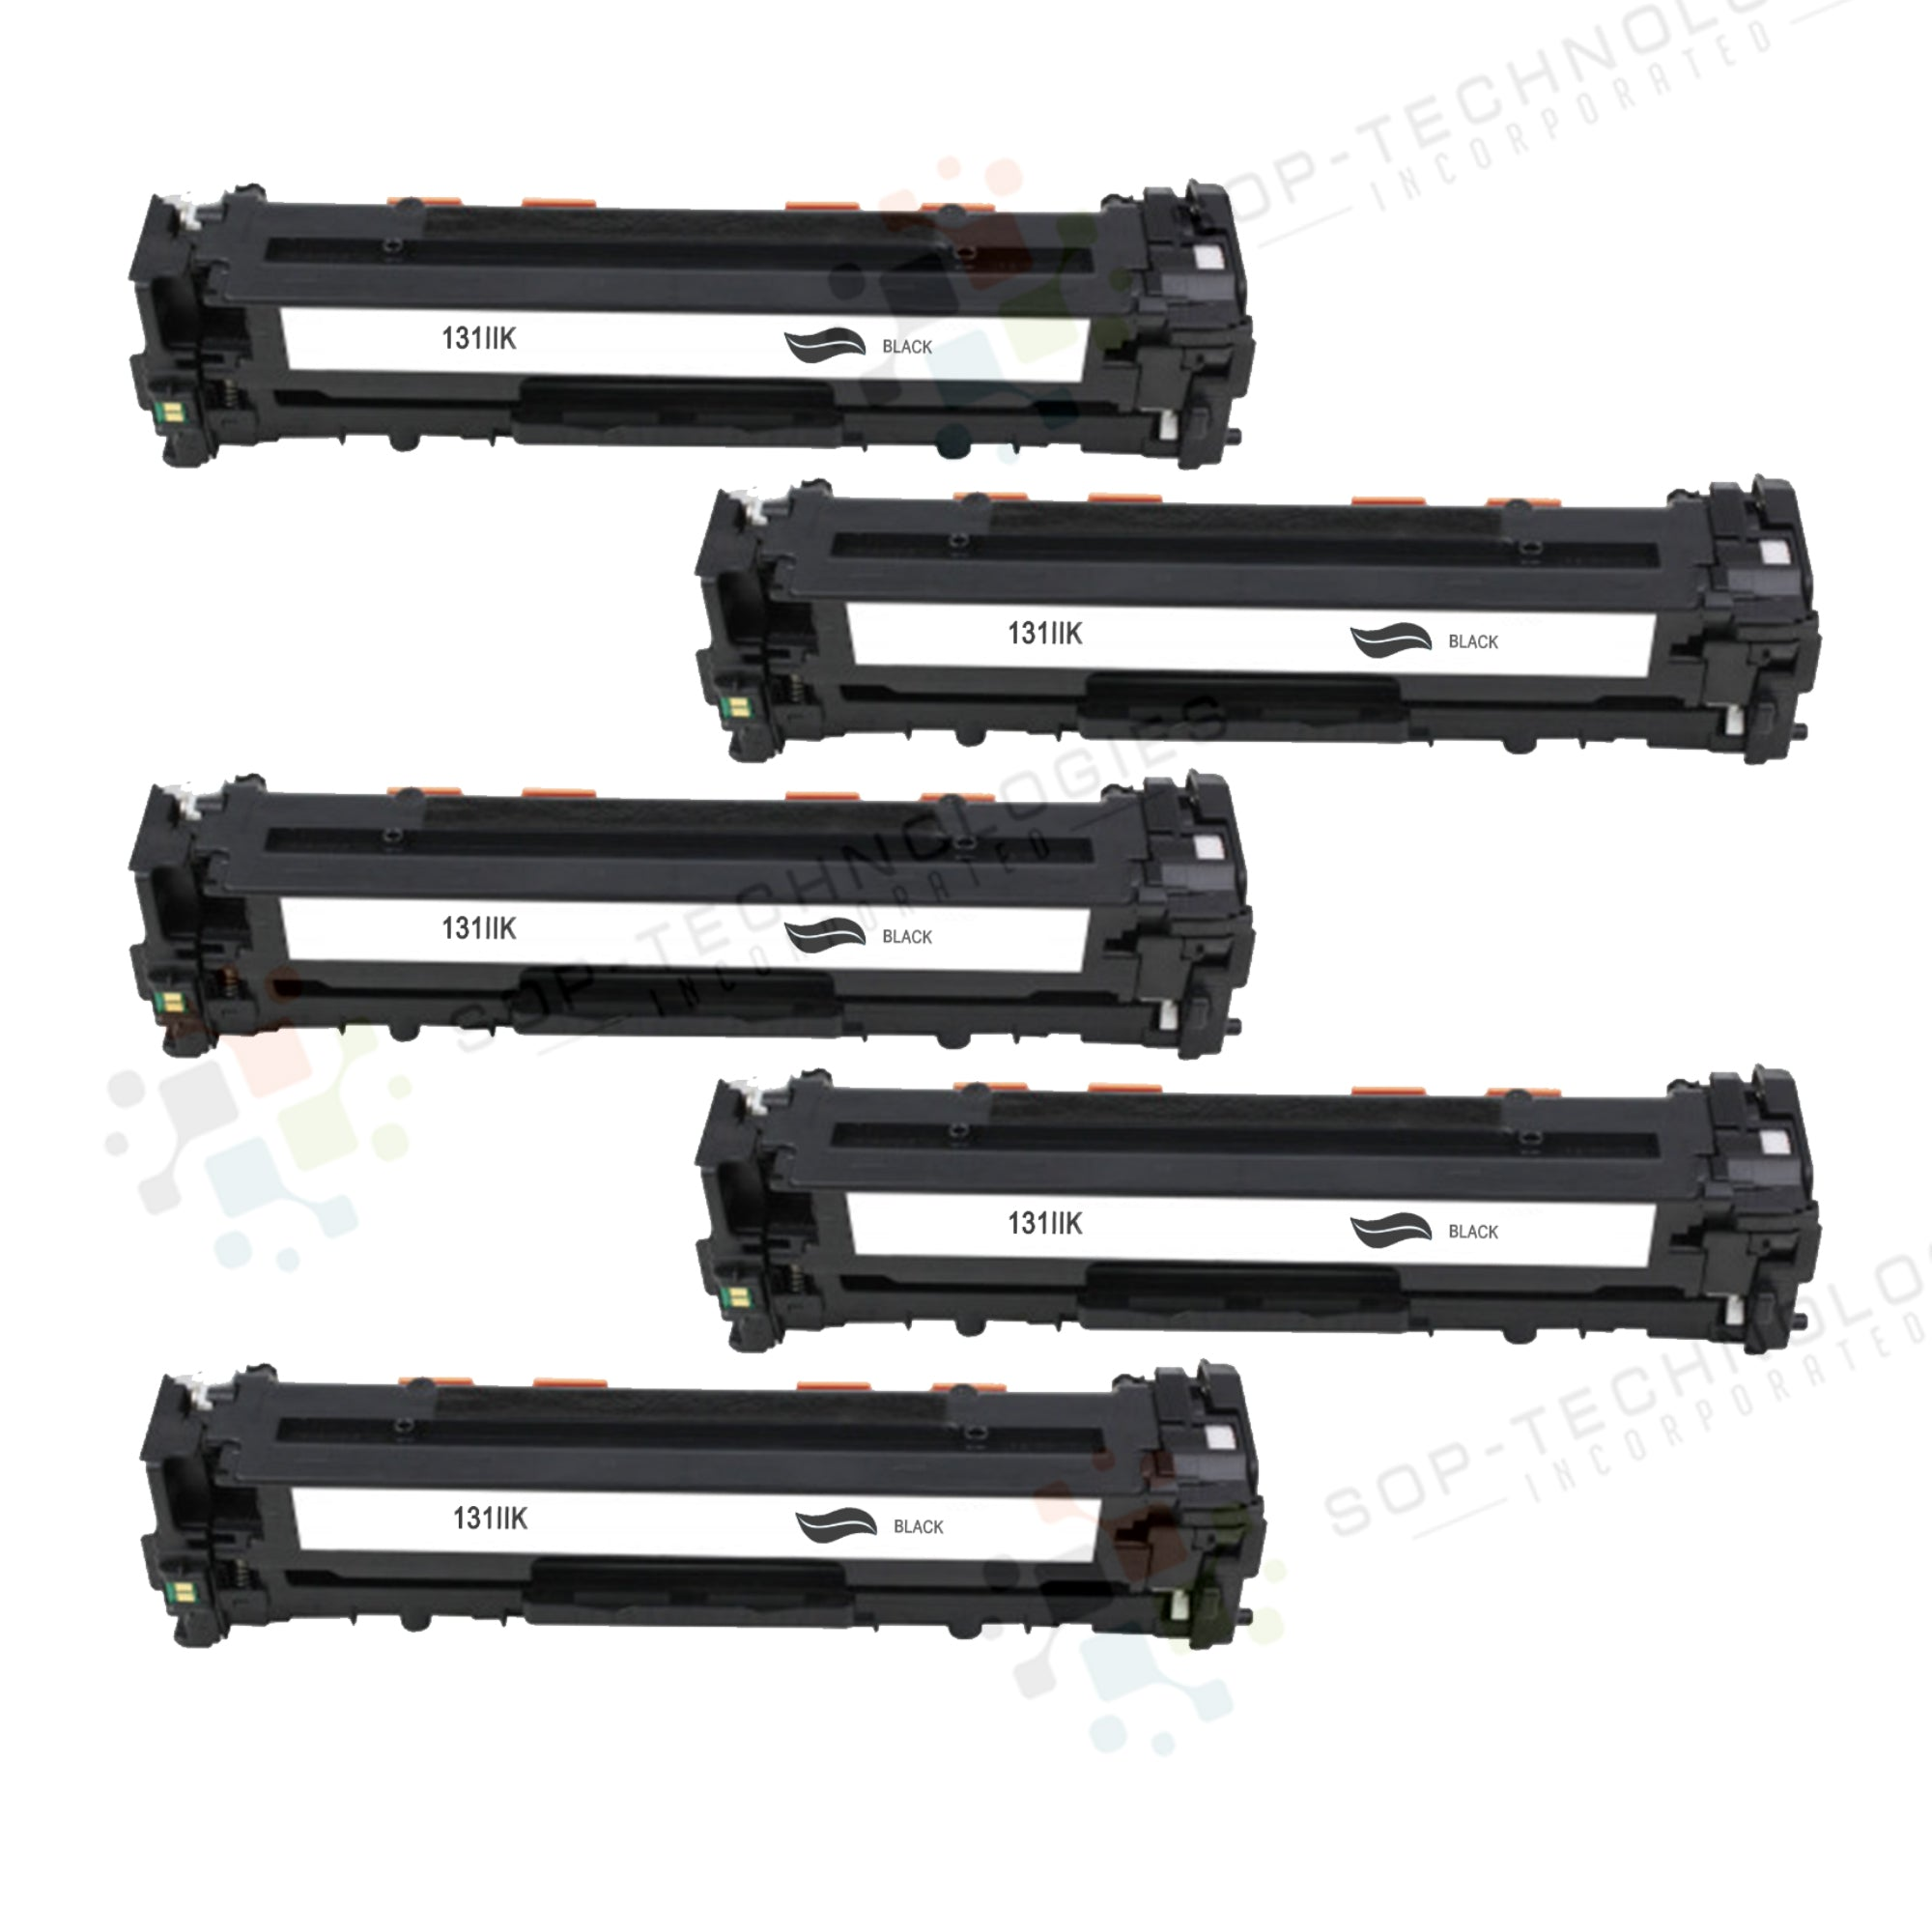 5pk Replacement Toner Cartridge for Canon imageClass MF8280Cw - SOP-TECHNOLOGIES, INC.